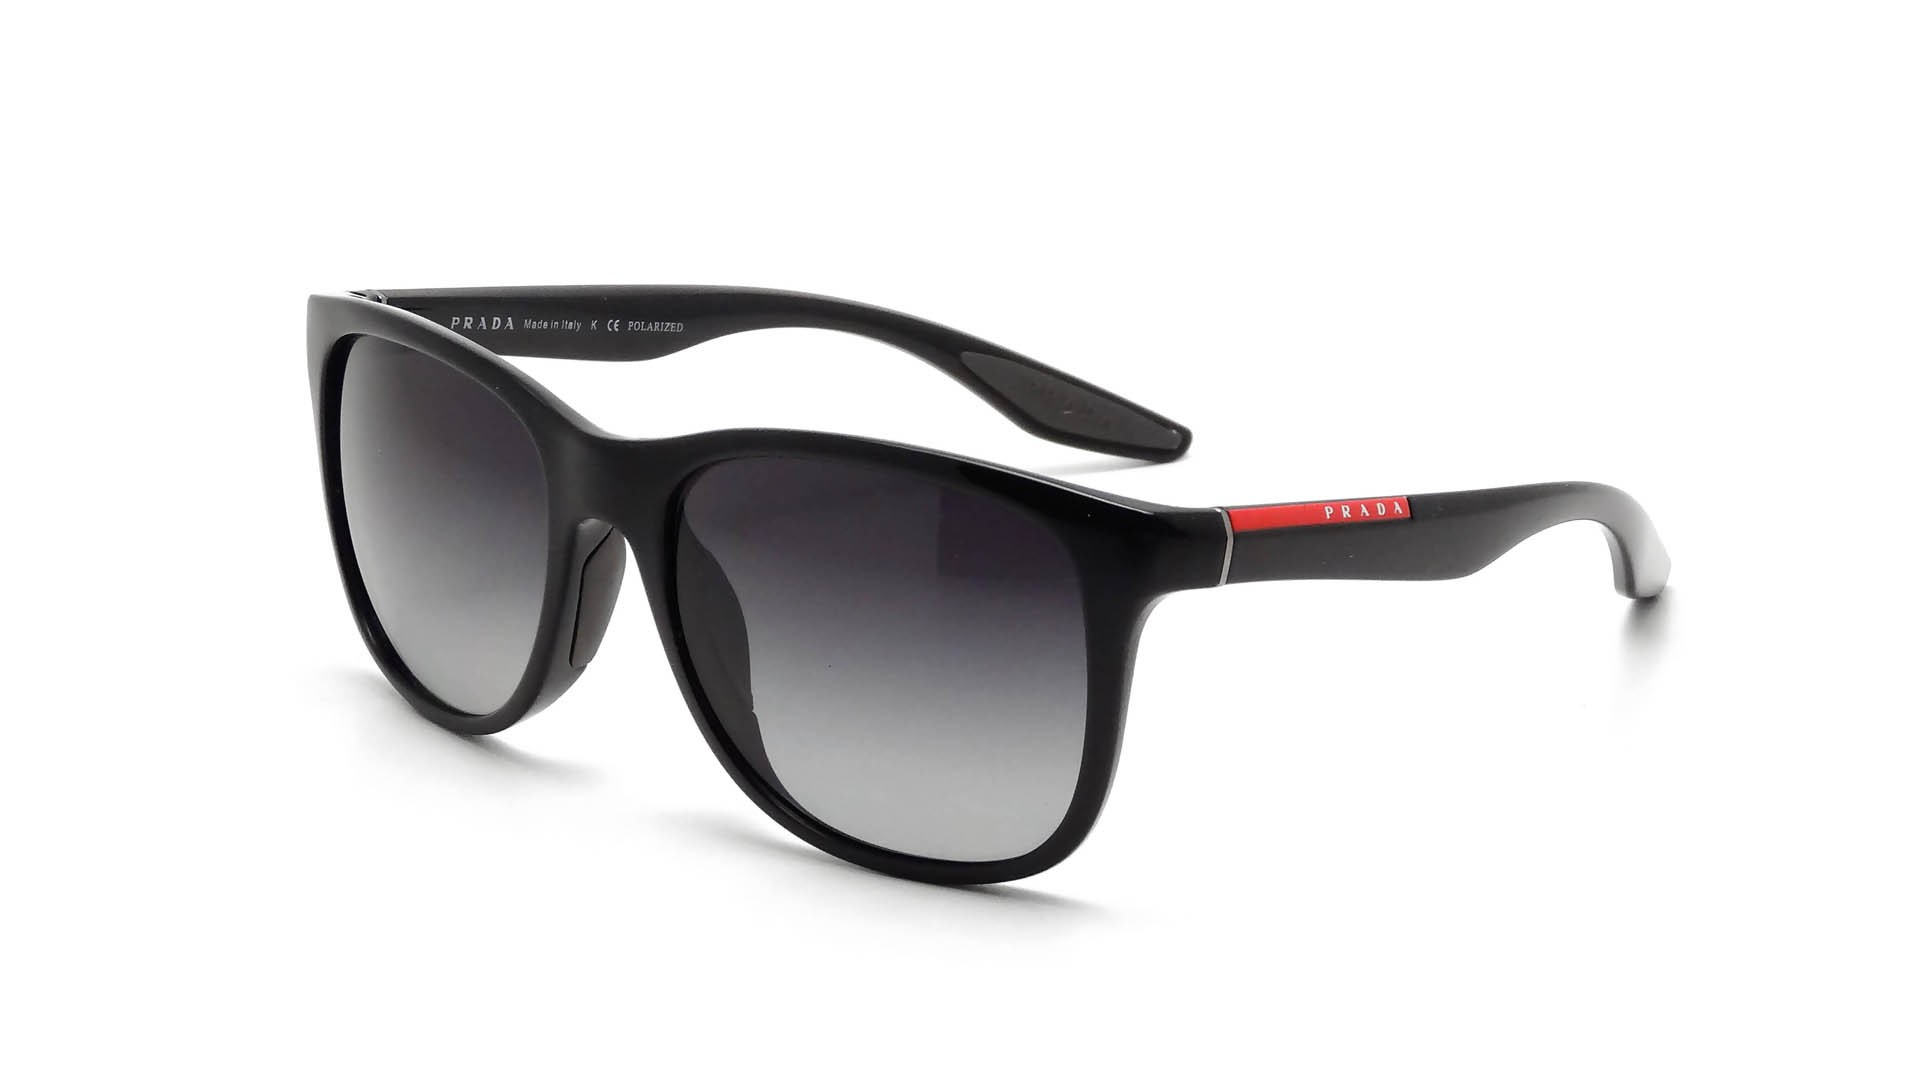 aebaa6d0bb7 Cheap Prada Polarized Sunglasses « Heritage Malta